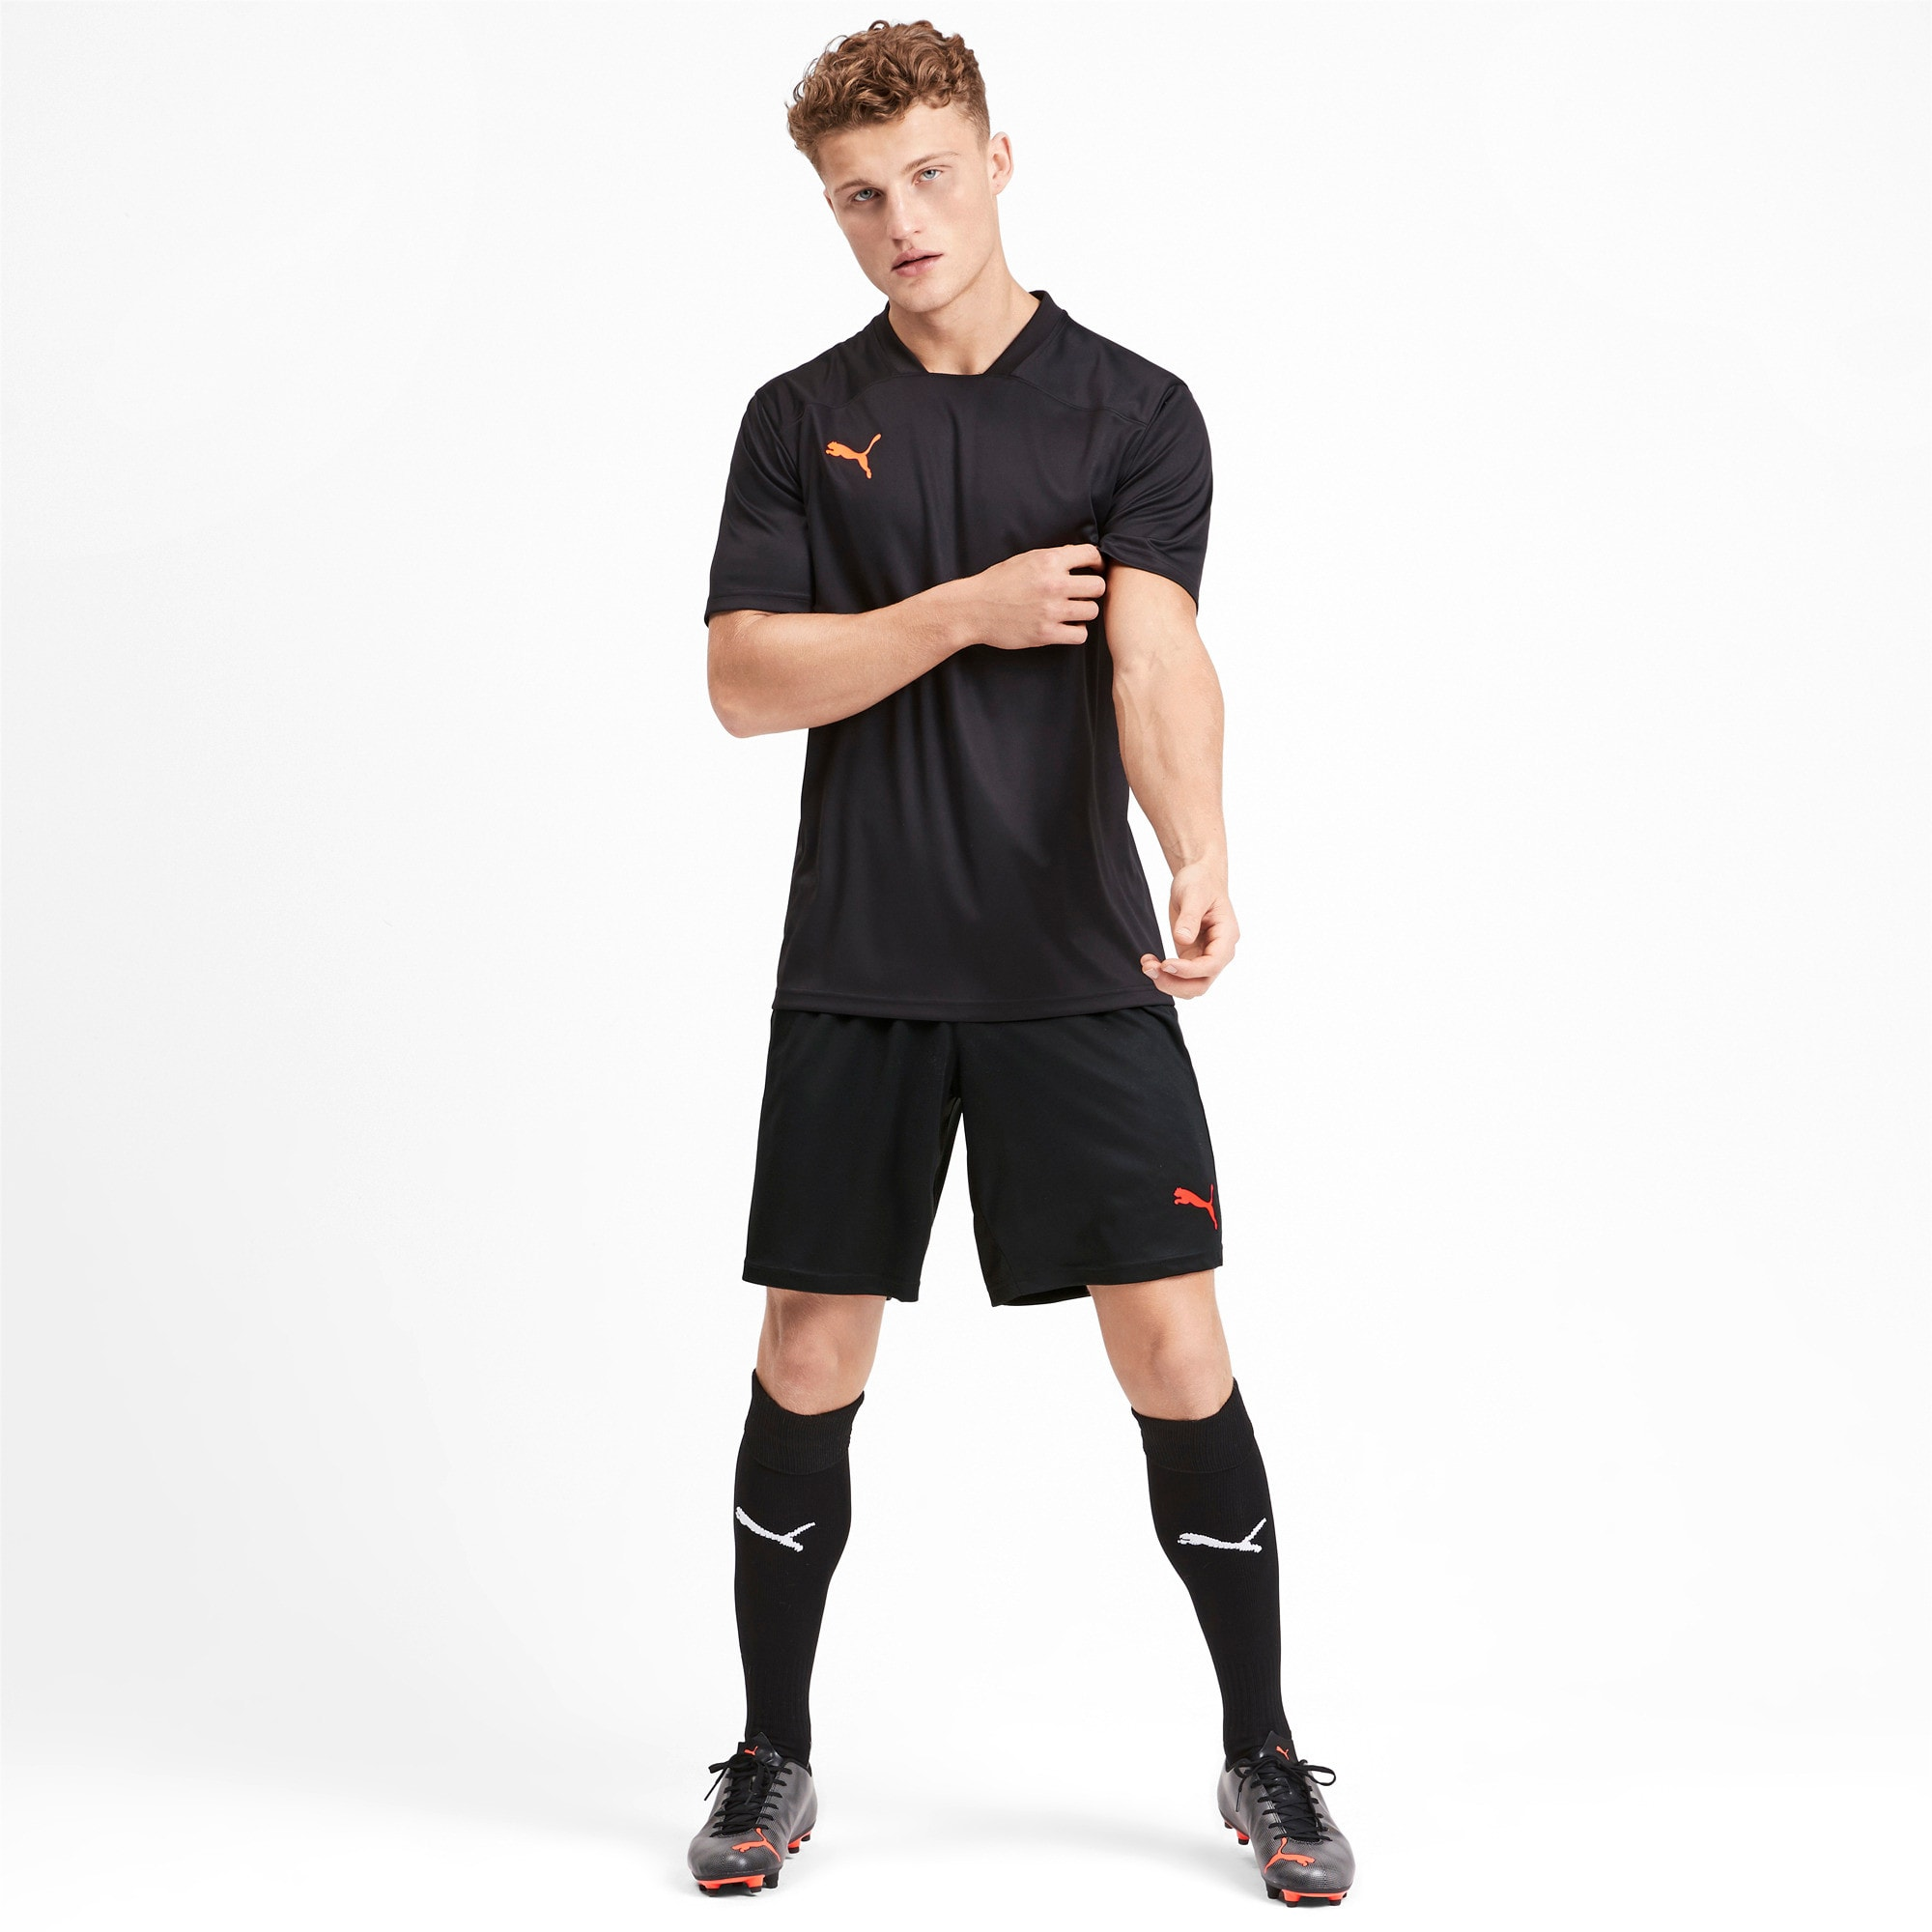 Thumbnail 3 of Men's Shorts, Puma Black, medium